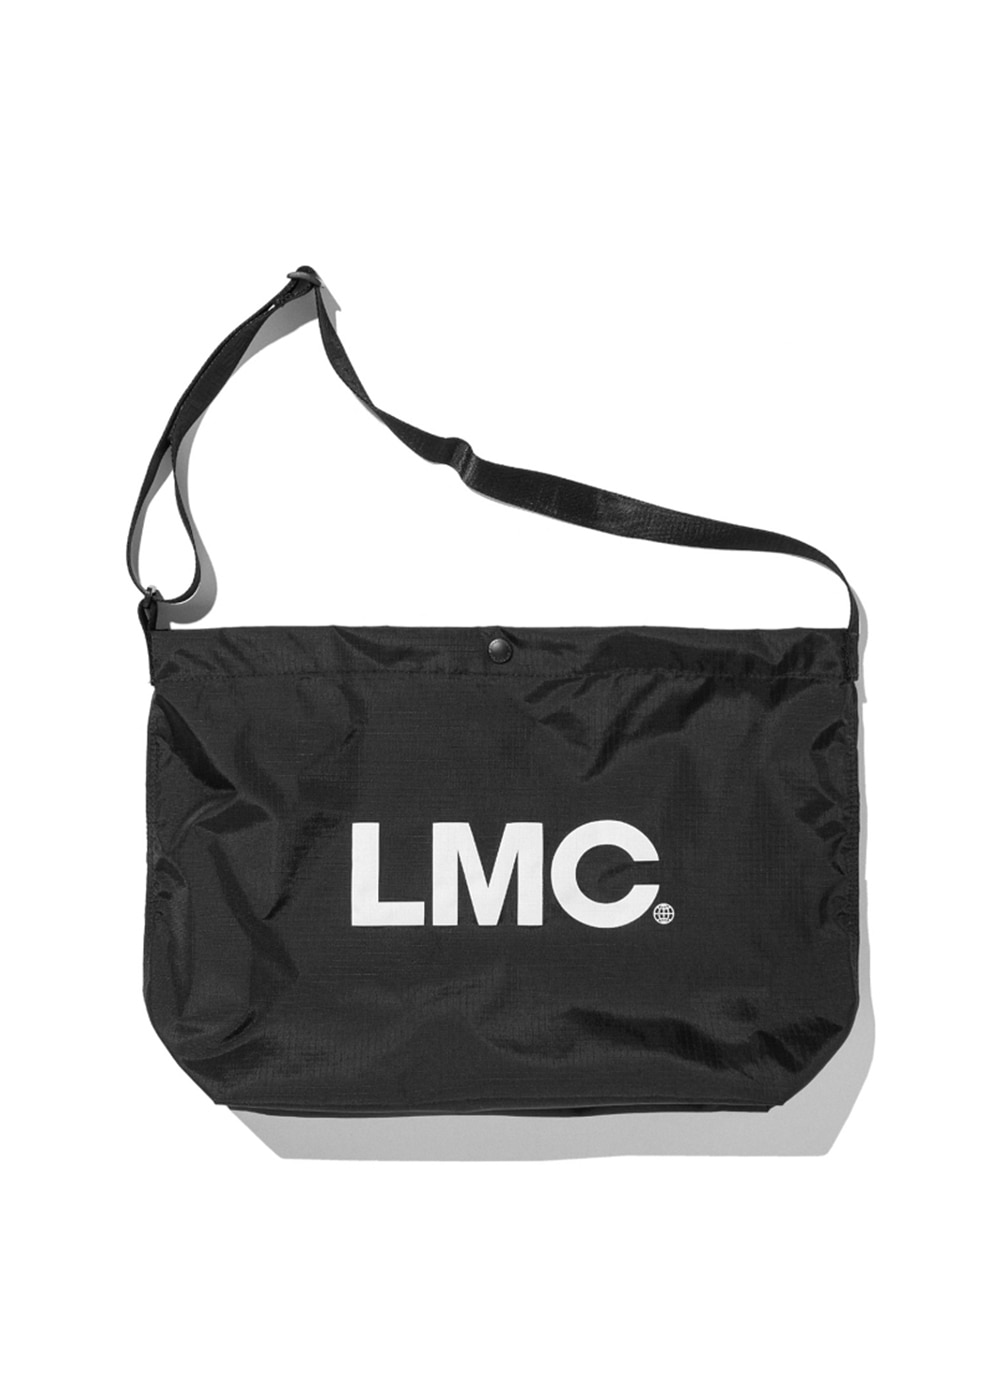 LMC LIGHT CROSS BAG black